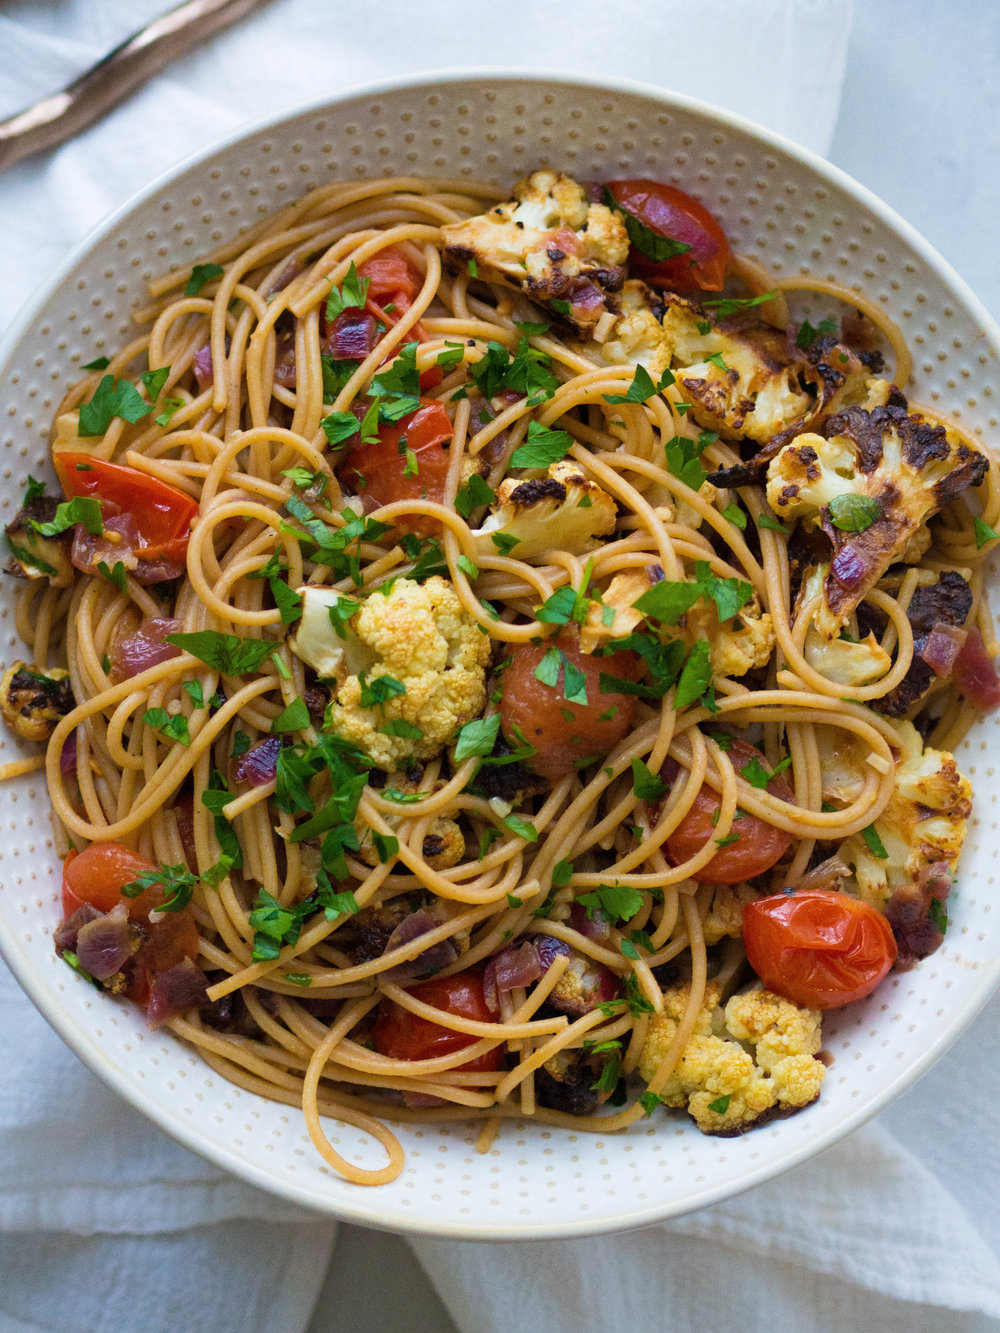 Browned Butter Spaghetti with Roasted Cauliflower is my absolute favorite pasta dish! With a rich browned butter and garlic sauce, juicy cherry tomatoes, sweet caramelized cauliflower and briny capers! So many flavors packed into one bowl of pasta! #pasta #spaghetti #roastedcauliflower #roastedvegetables #brownbutter #healthyrecipe